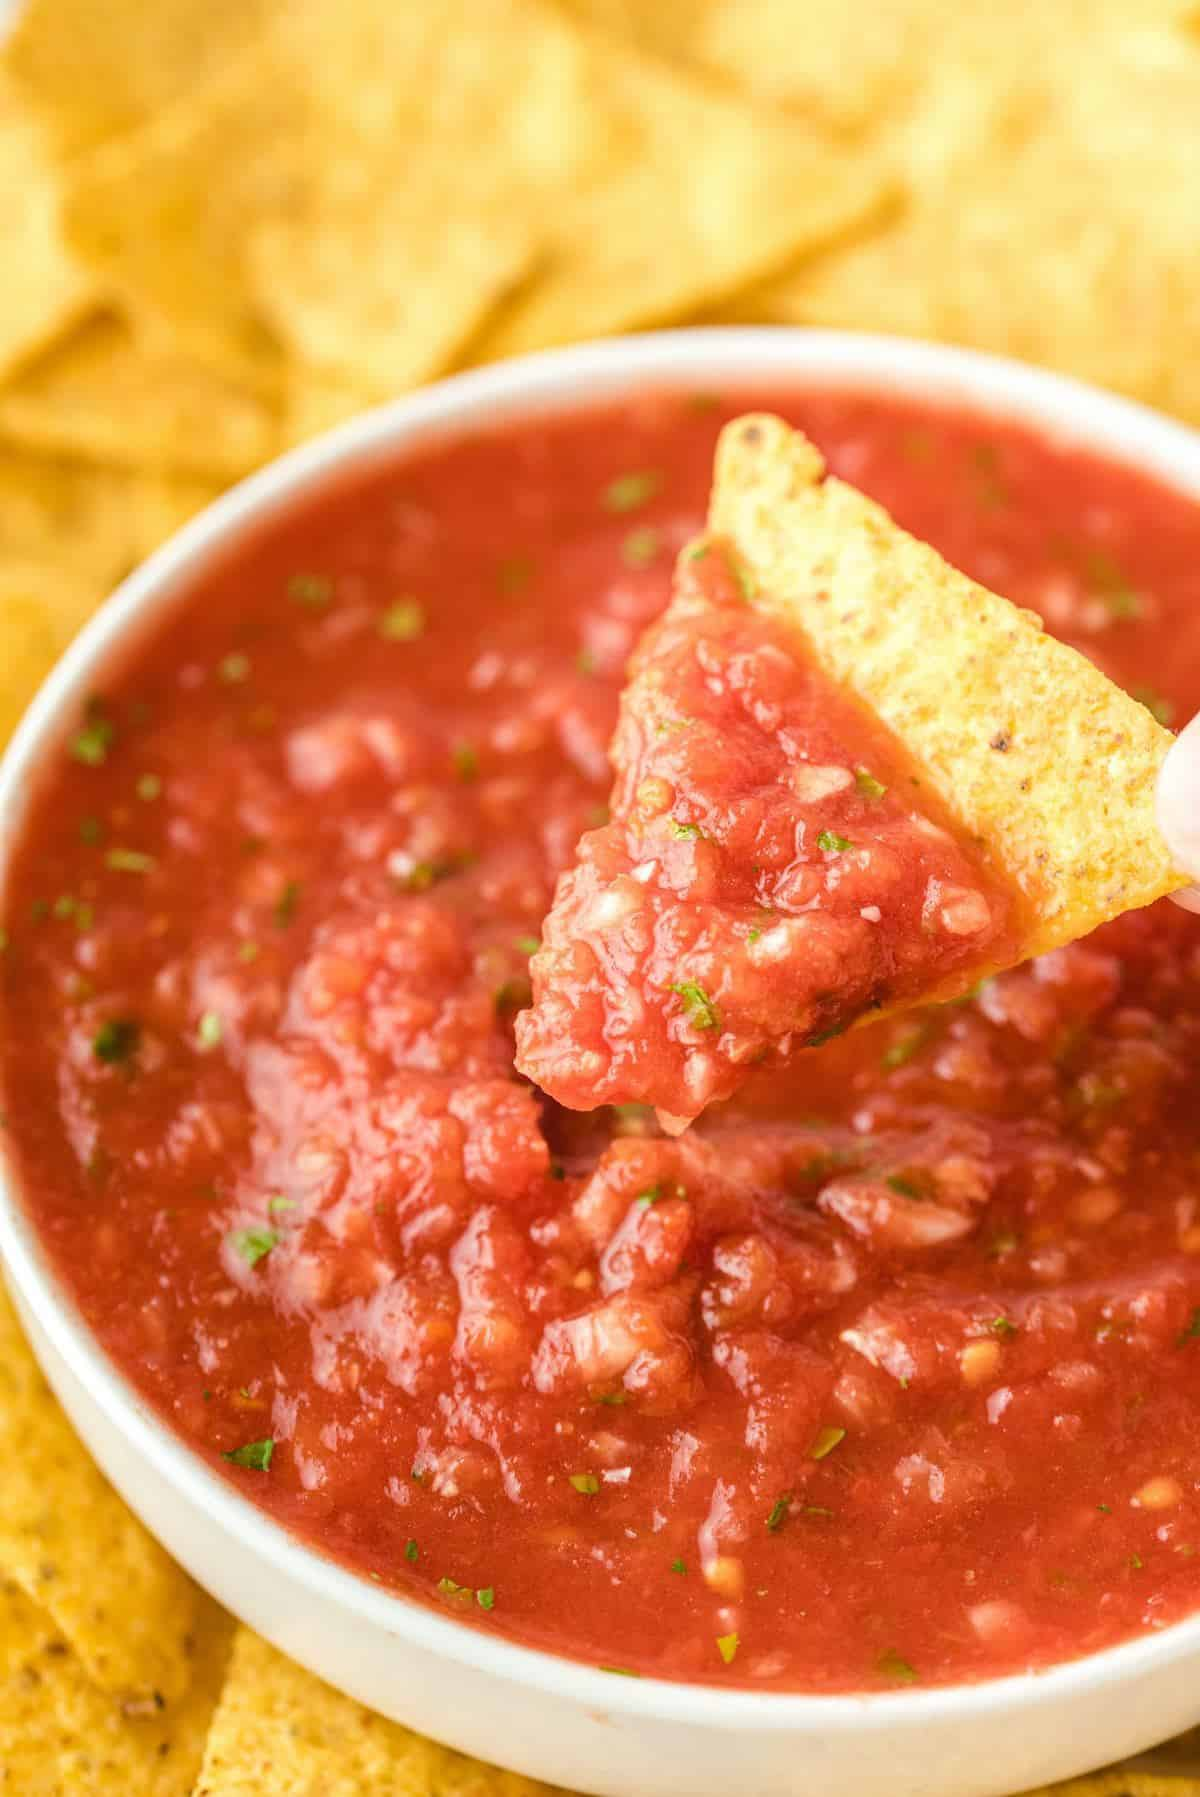 tortilla chips dipped in salsa